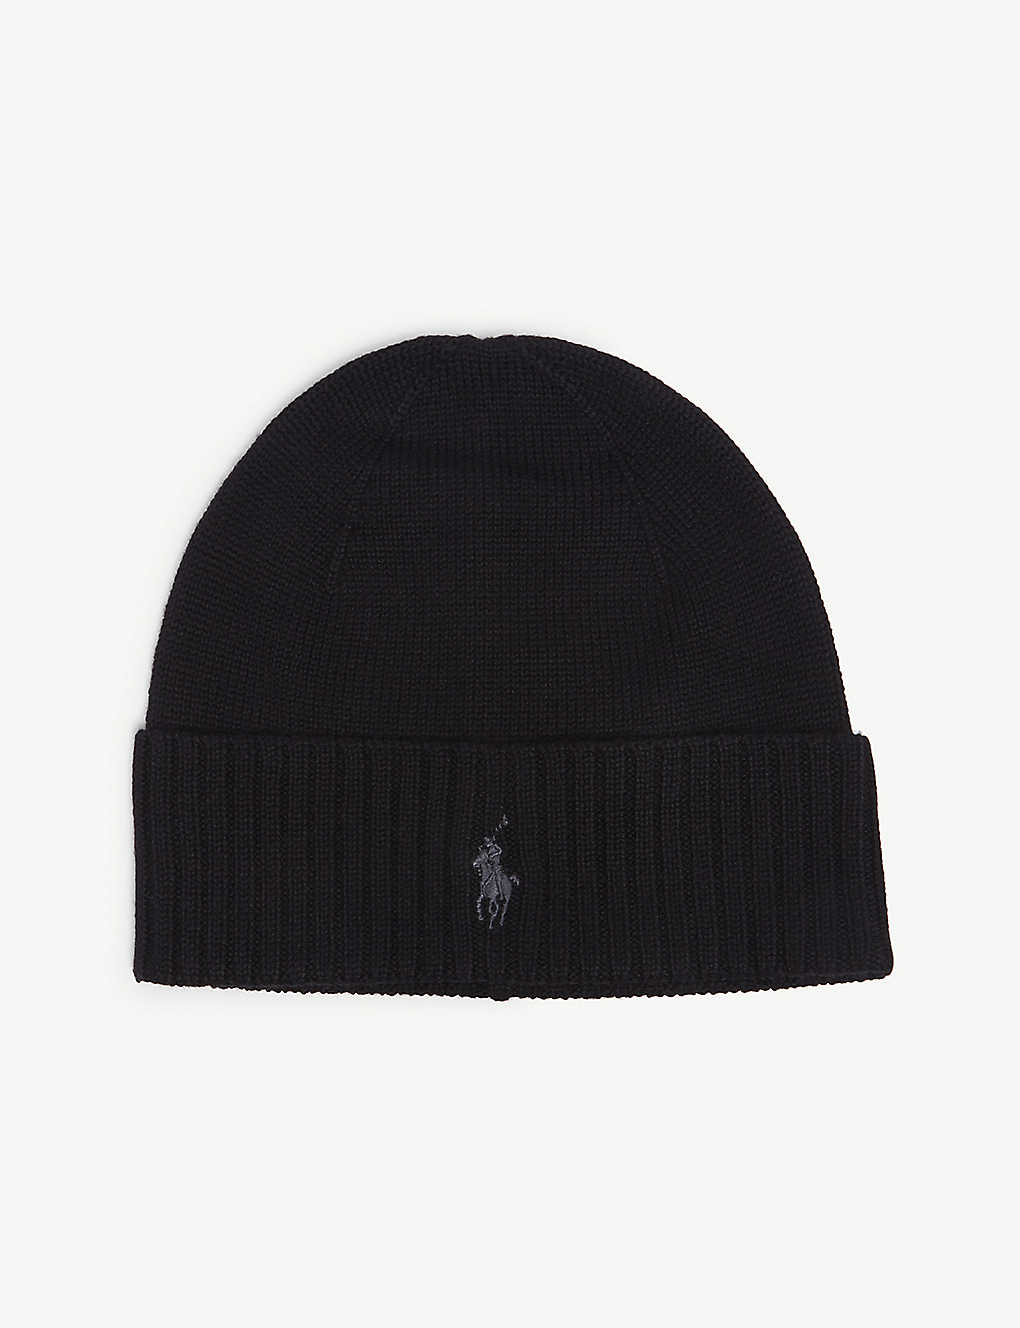 0485074c329801 POLO RALPH LAUREN - Embroidered logo wool beanie | Selfridges.com